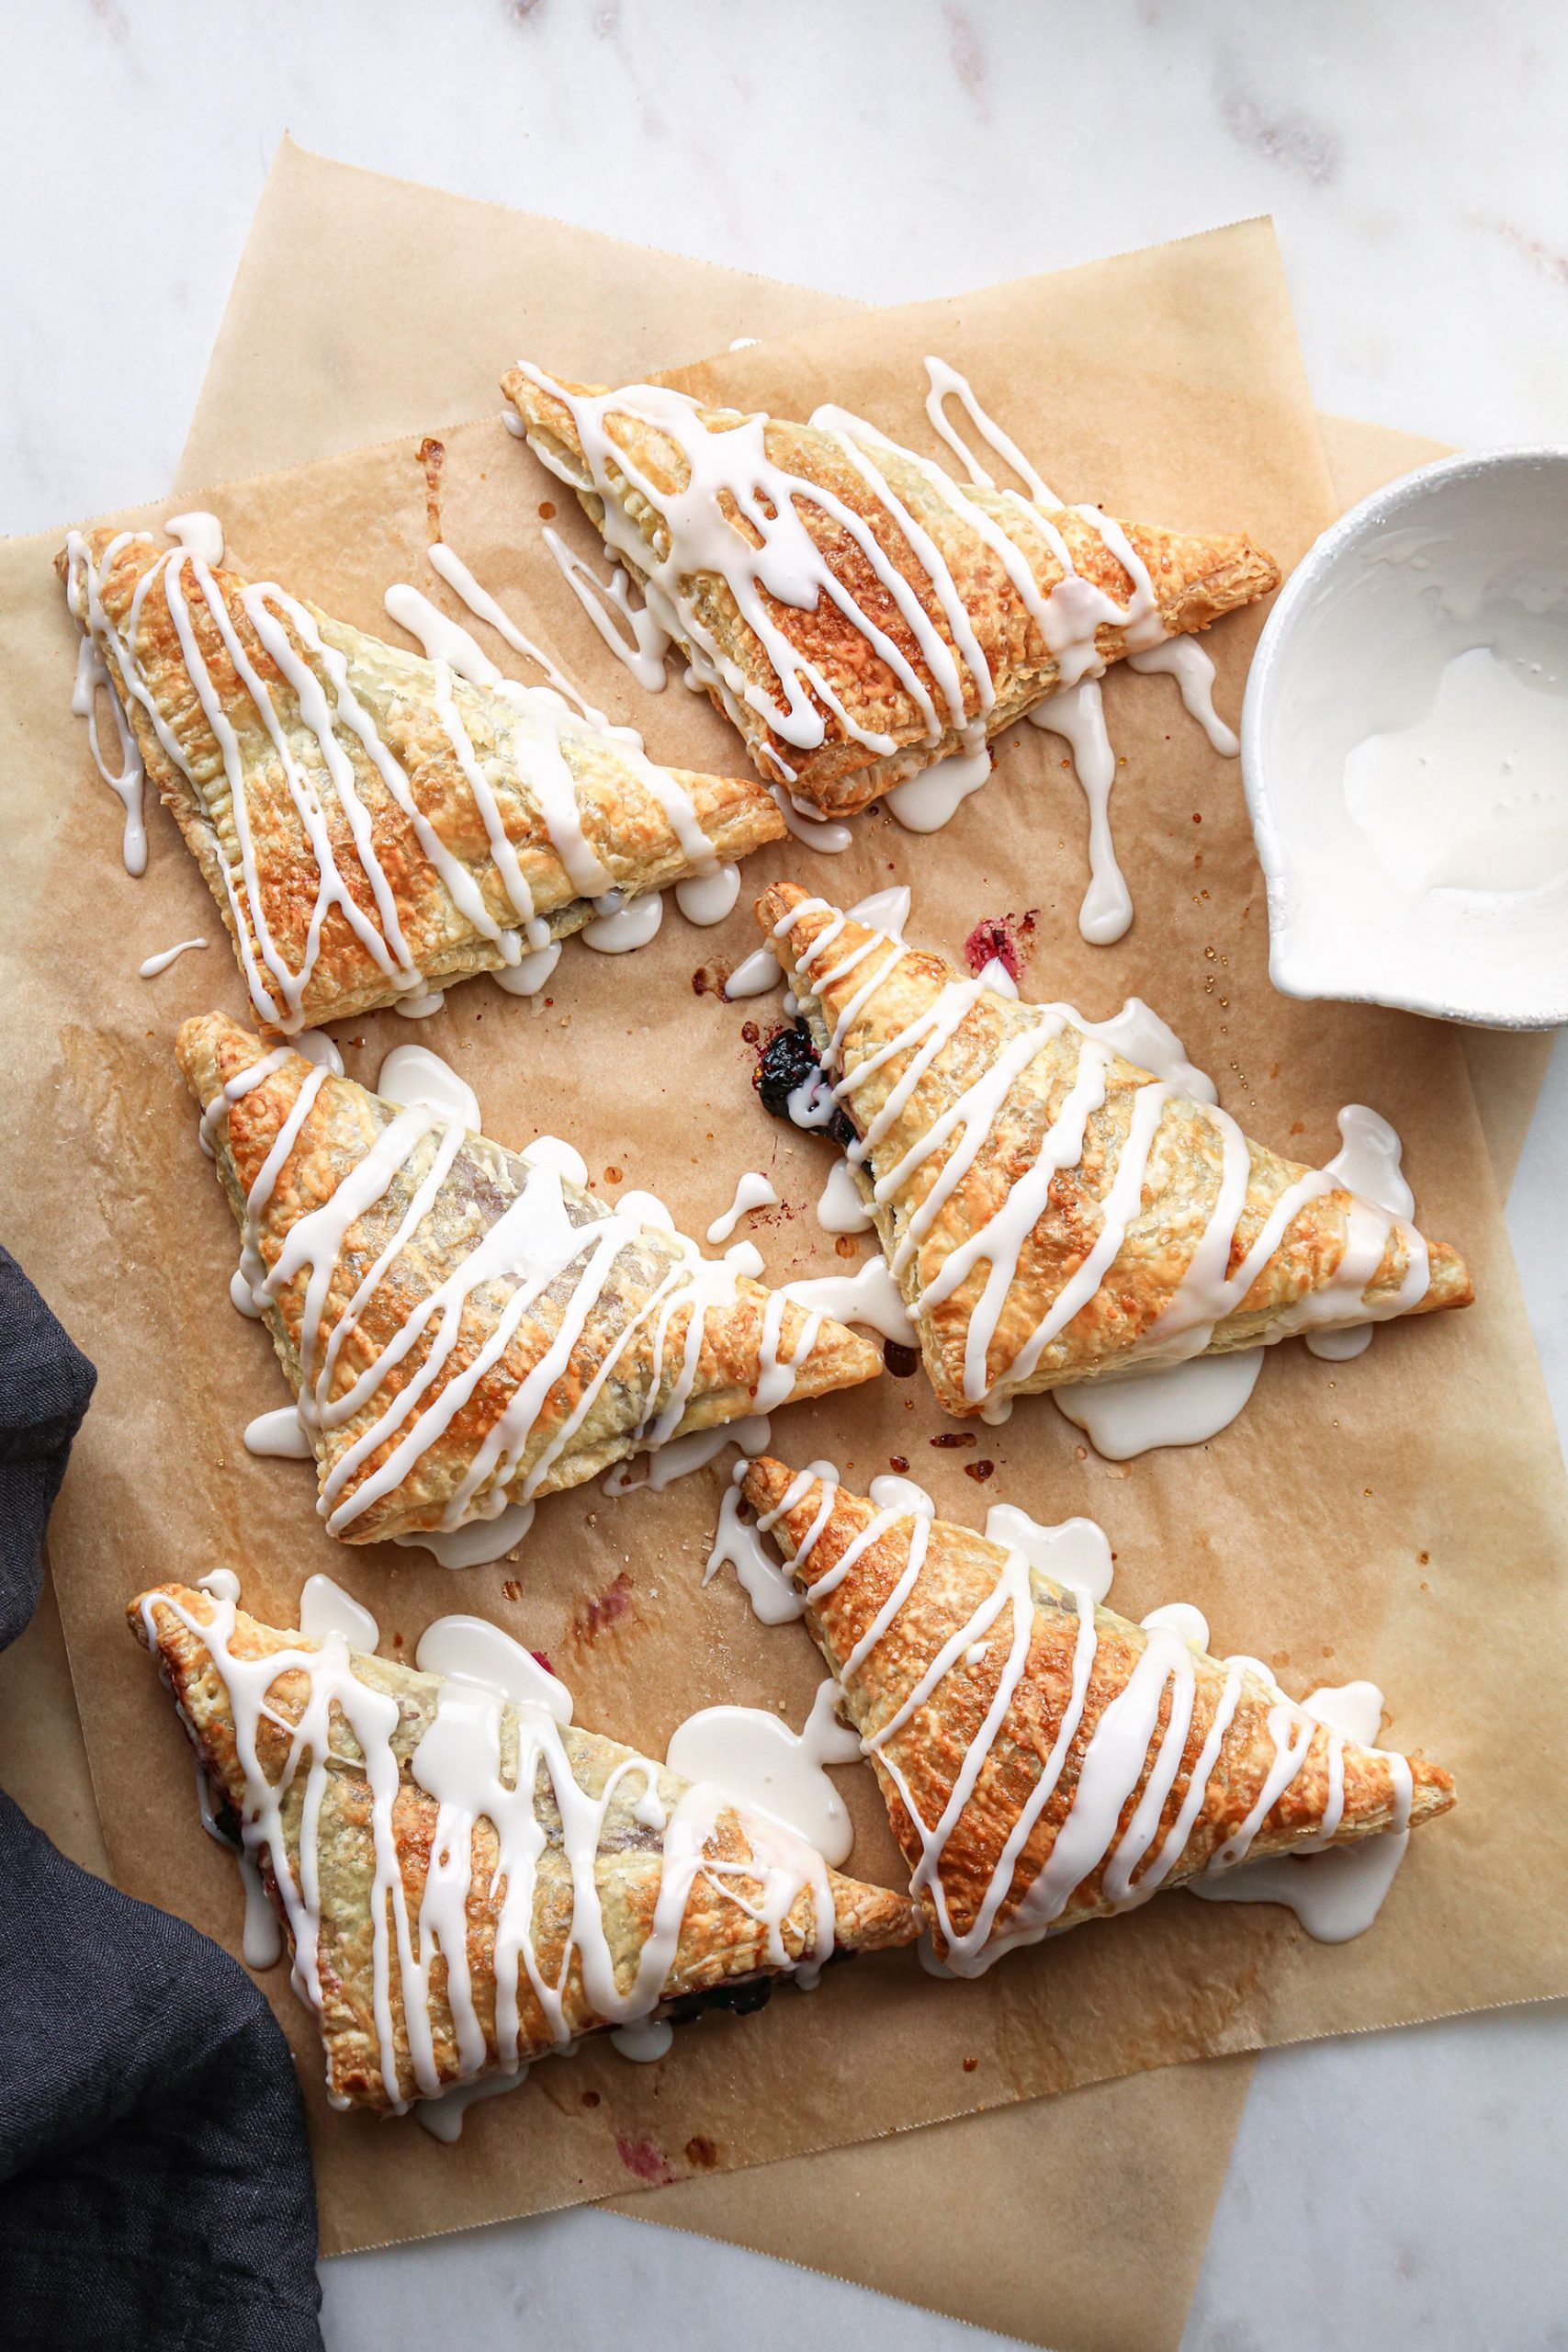 Easy Berry Turnovers | Free of dairy and refined sugar + vegan friendly